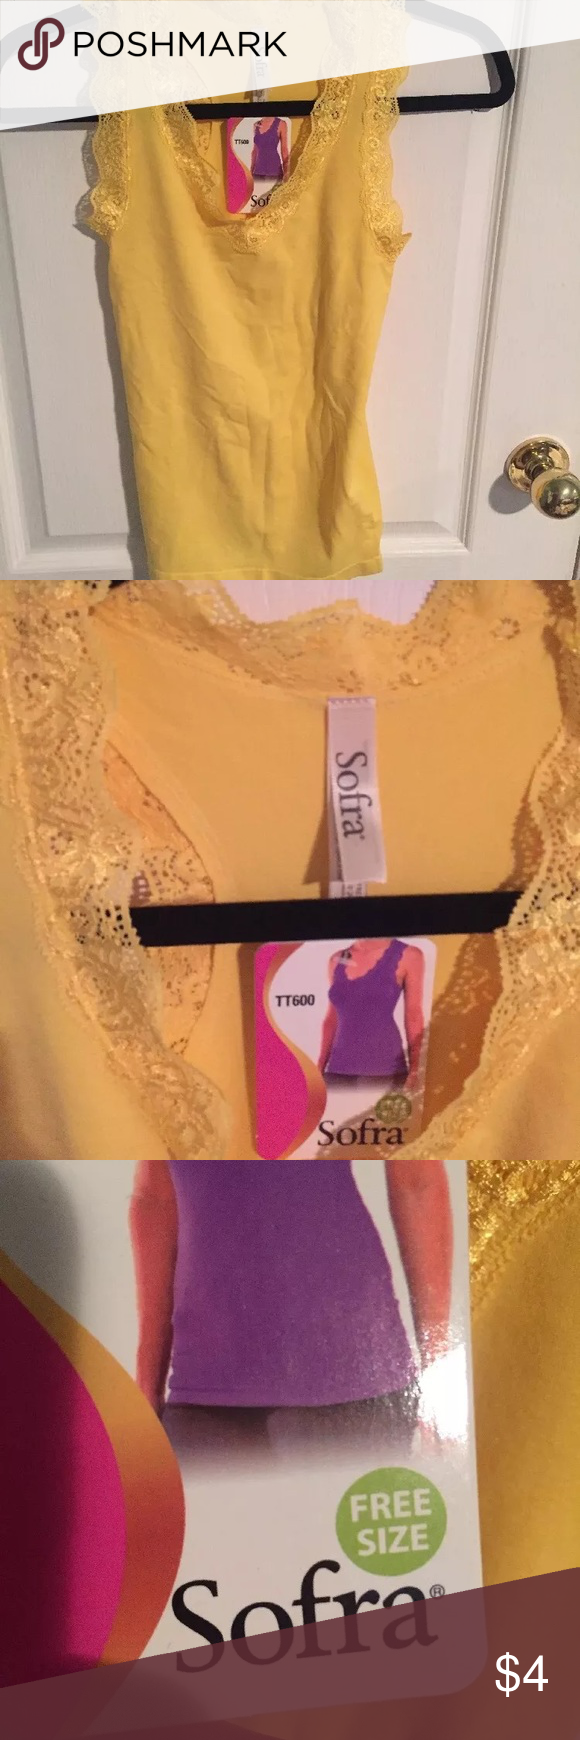 Nwt yellow sofra tank top with lace and racerback Yellow soft tank. Supposed to be one size fits all but I'm not sure. I've never even worn it because yellow is not my color. It's super soft and would look cute under a jacket or sweater. Sofra Tops Tank Tops